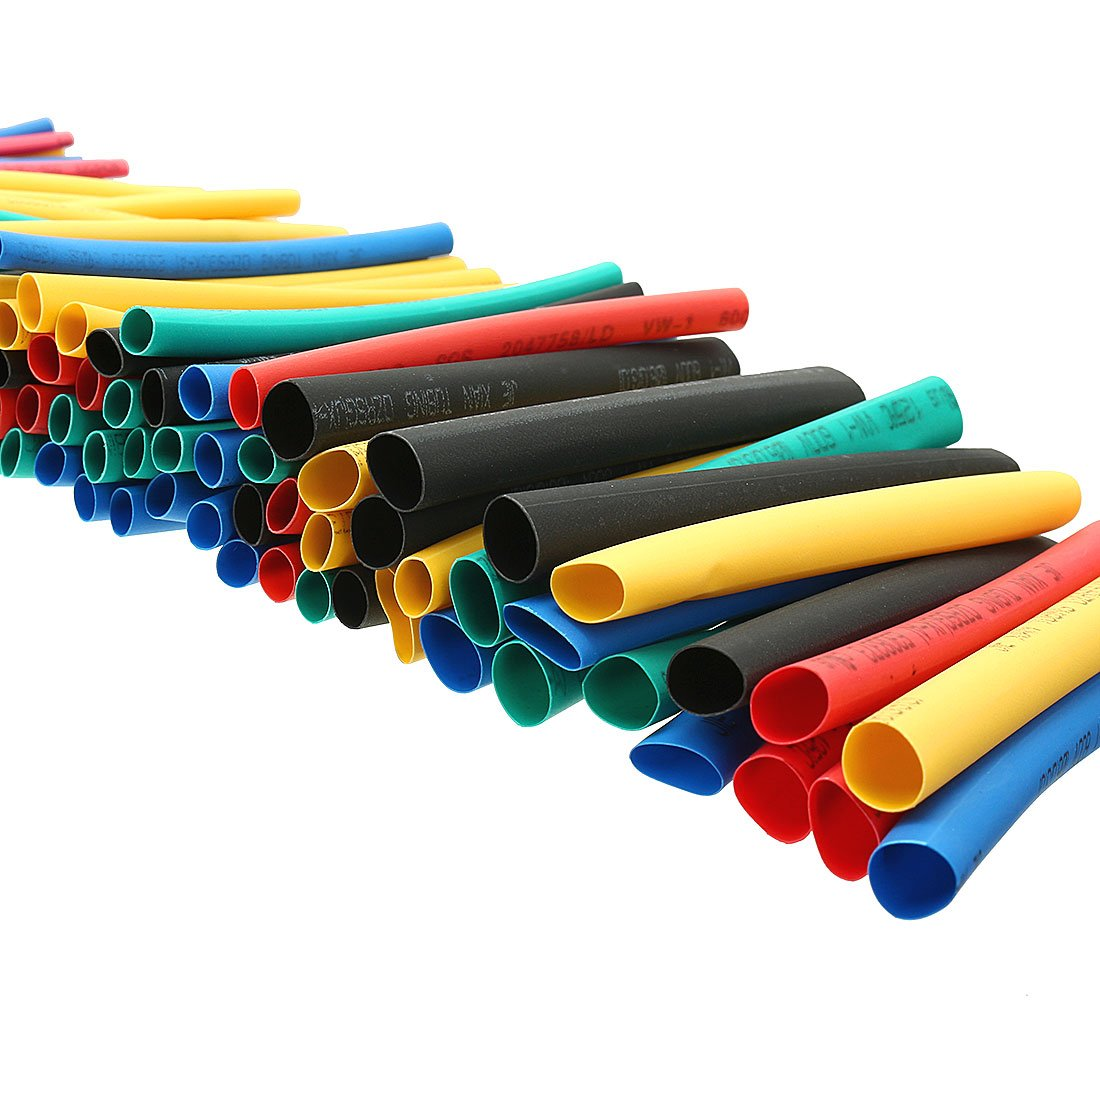 uxcell 410Pcs 2:1 Heat Shrink Tubing Tube Sleeving Wire Cable 5 Color 10 Sizes by uxcell (Image #6)